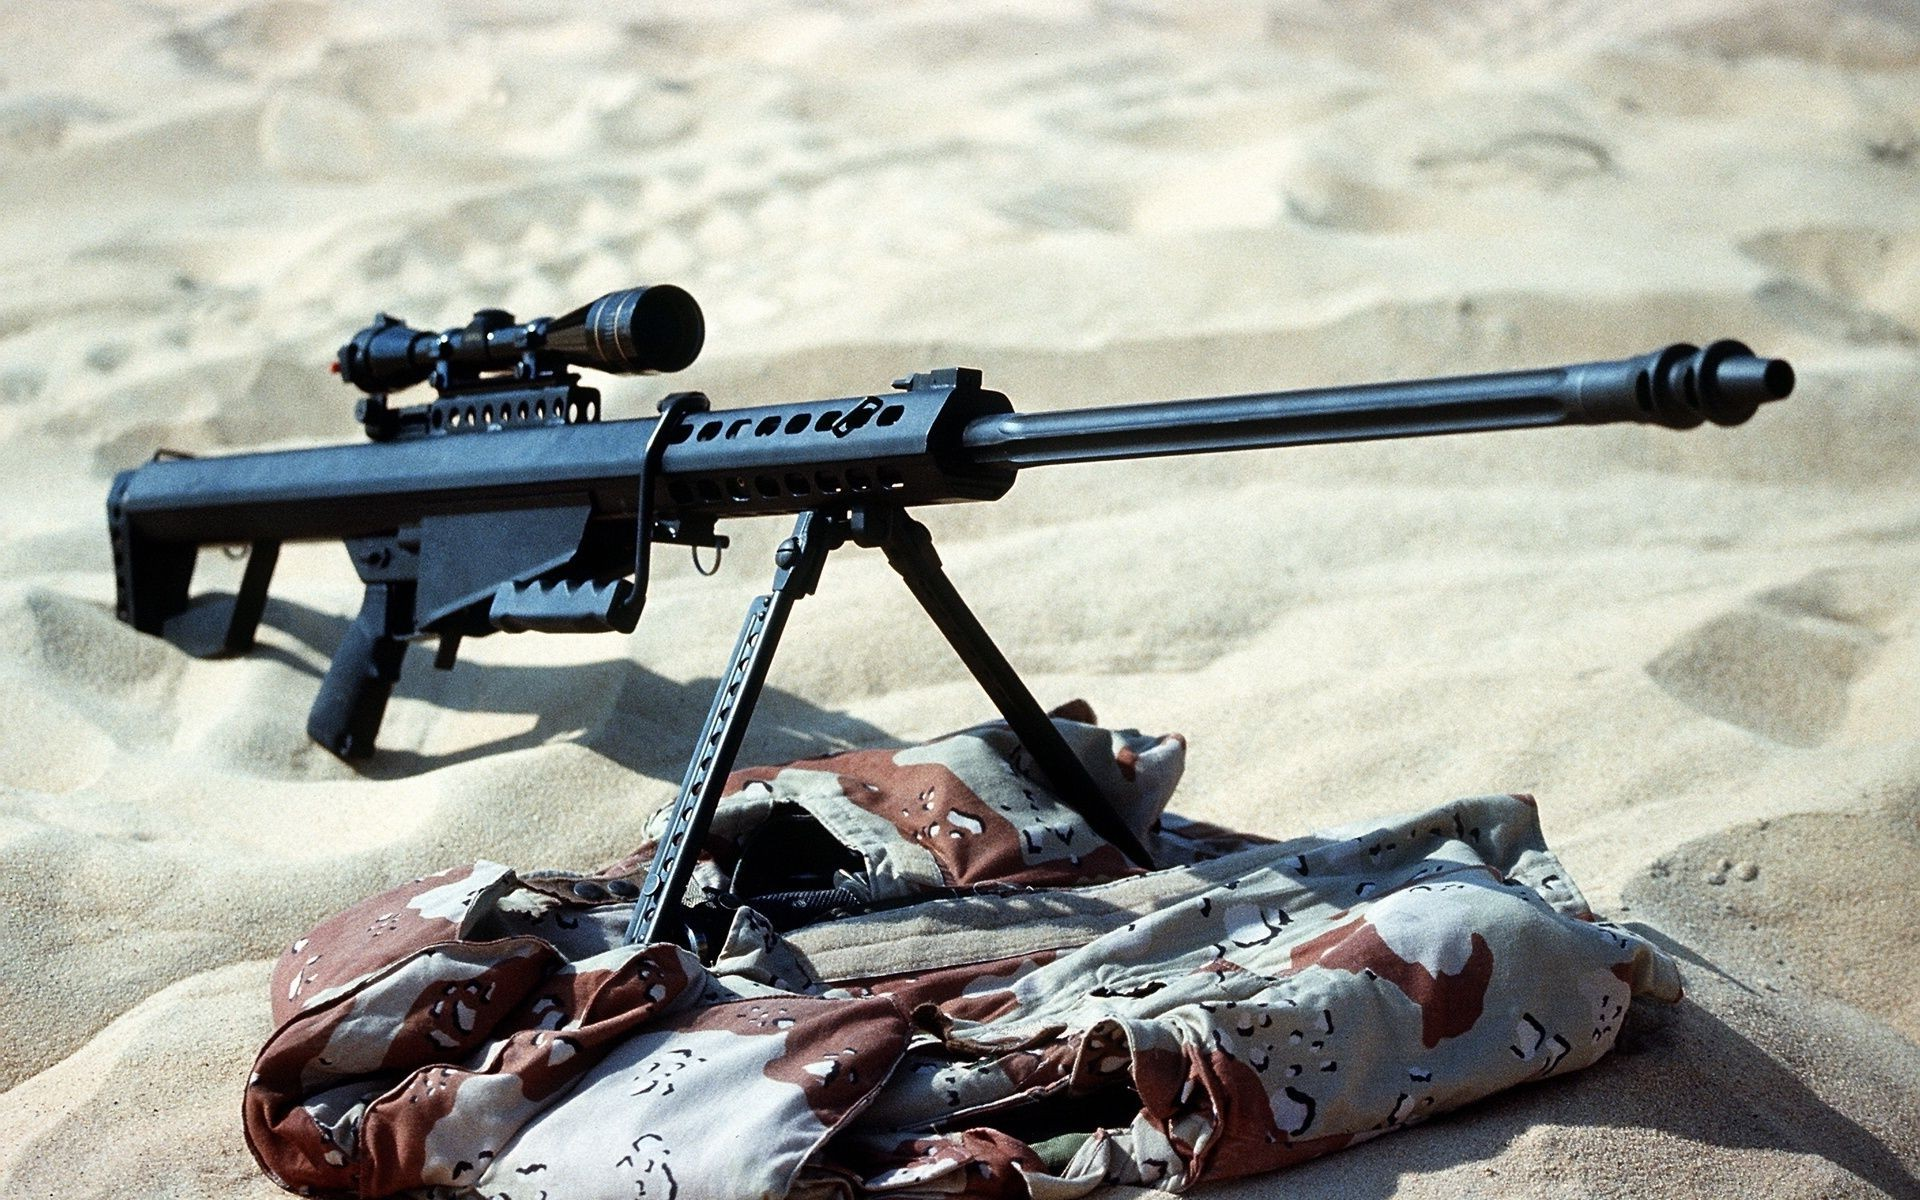 powerful sniper rifle sand the prone